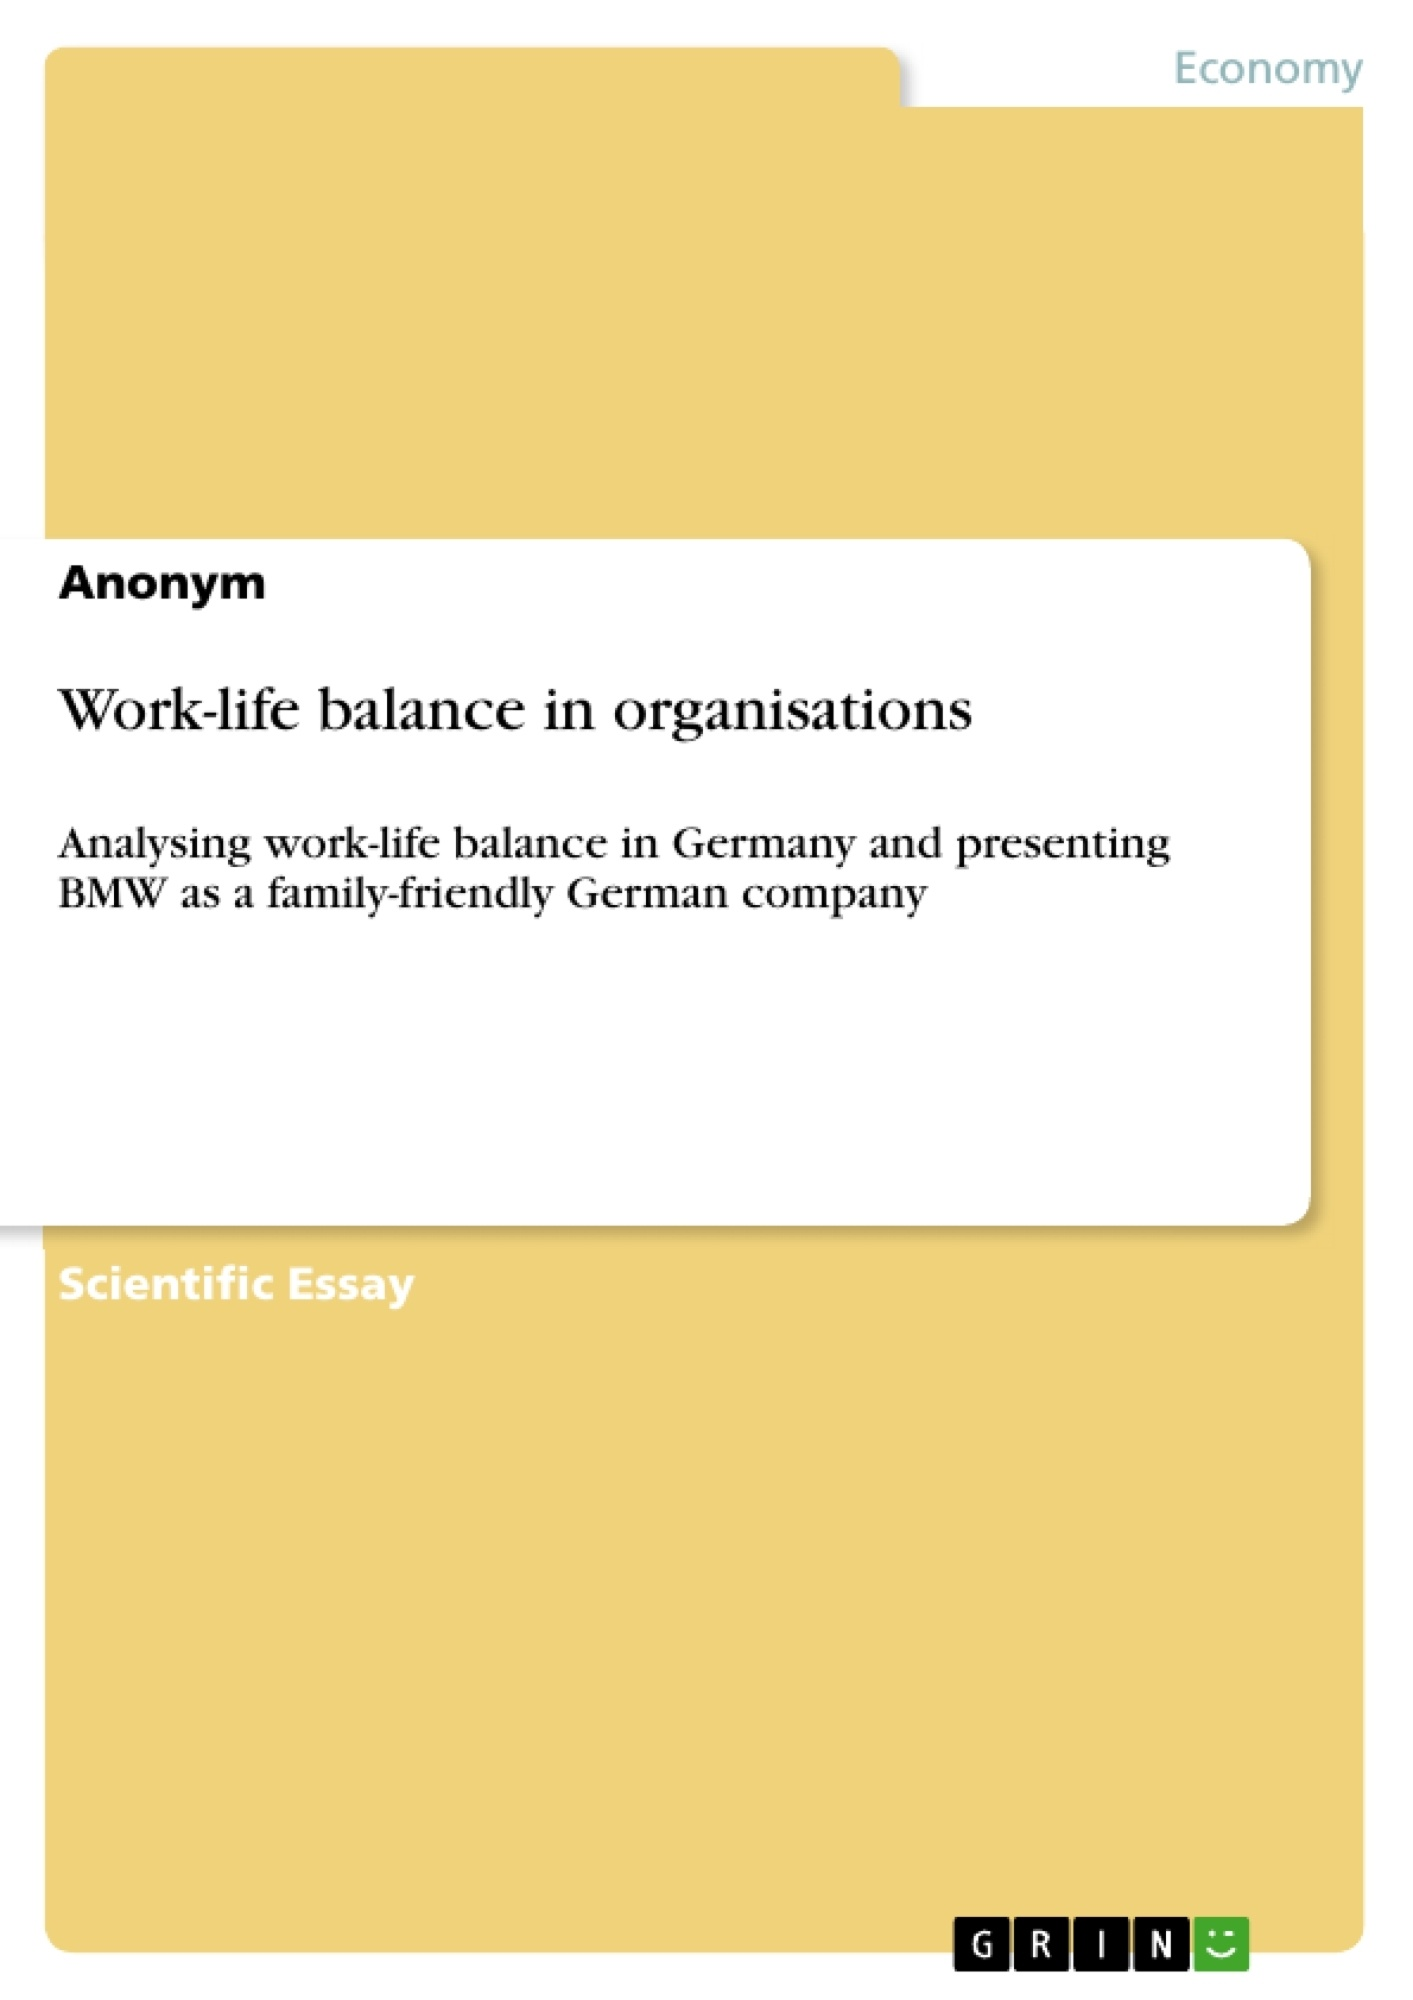 Title: Work-life balance in organisations